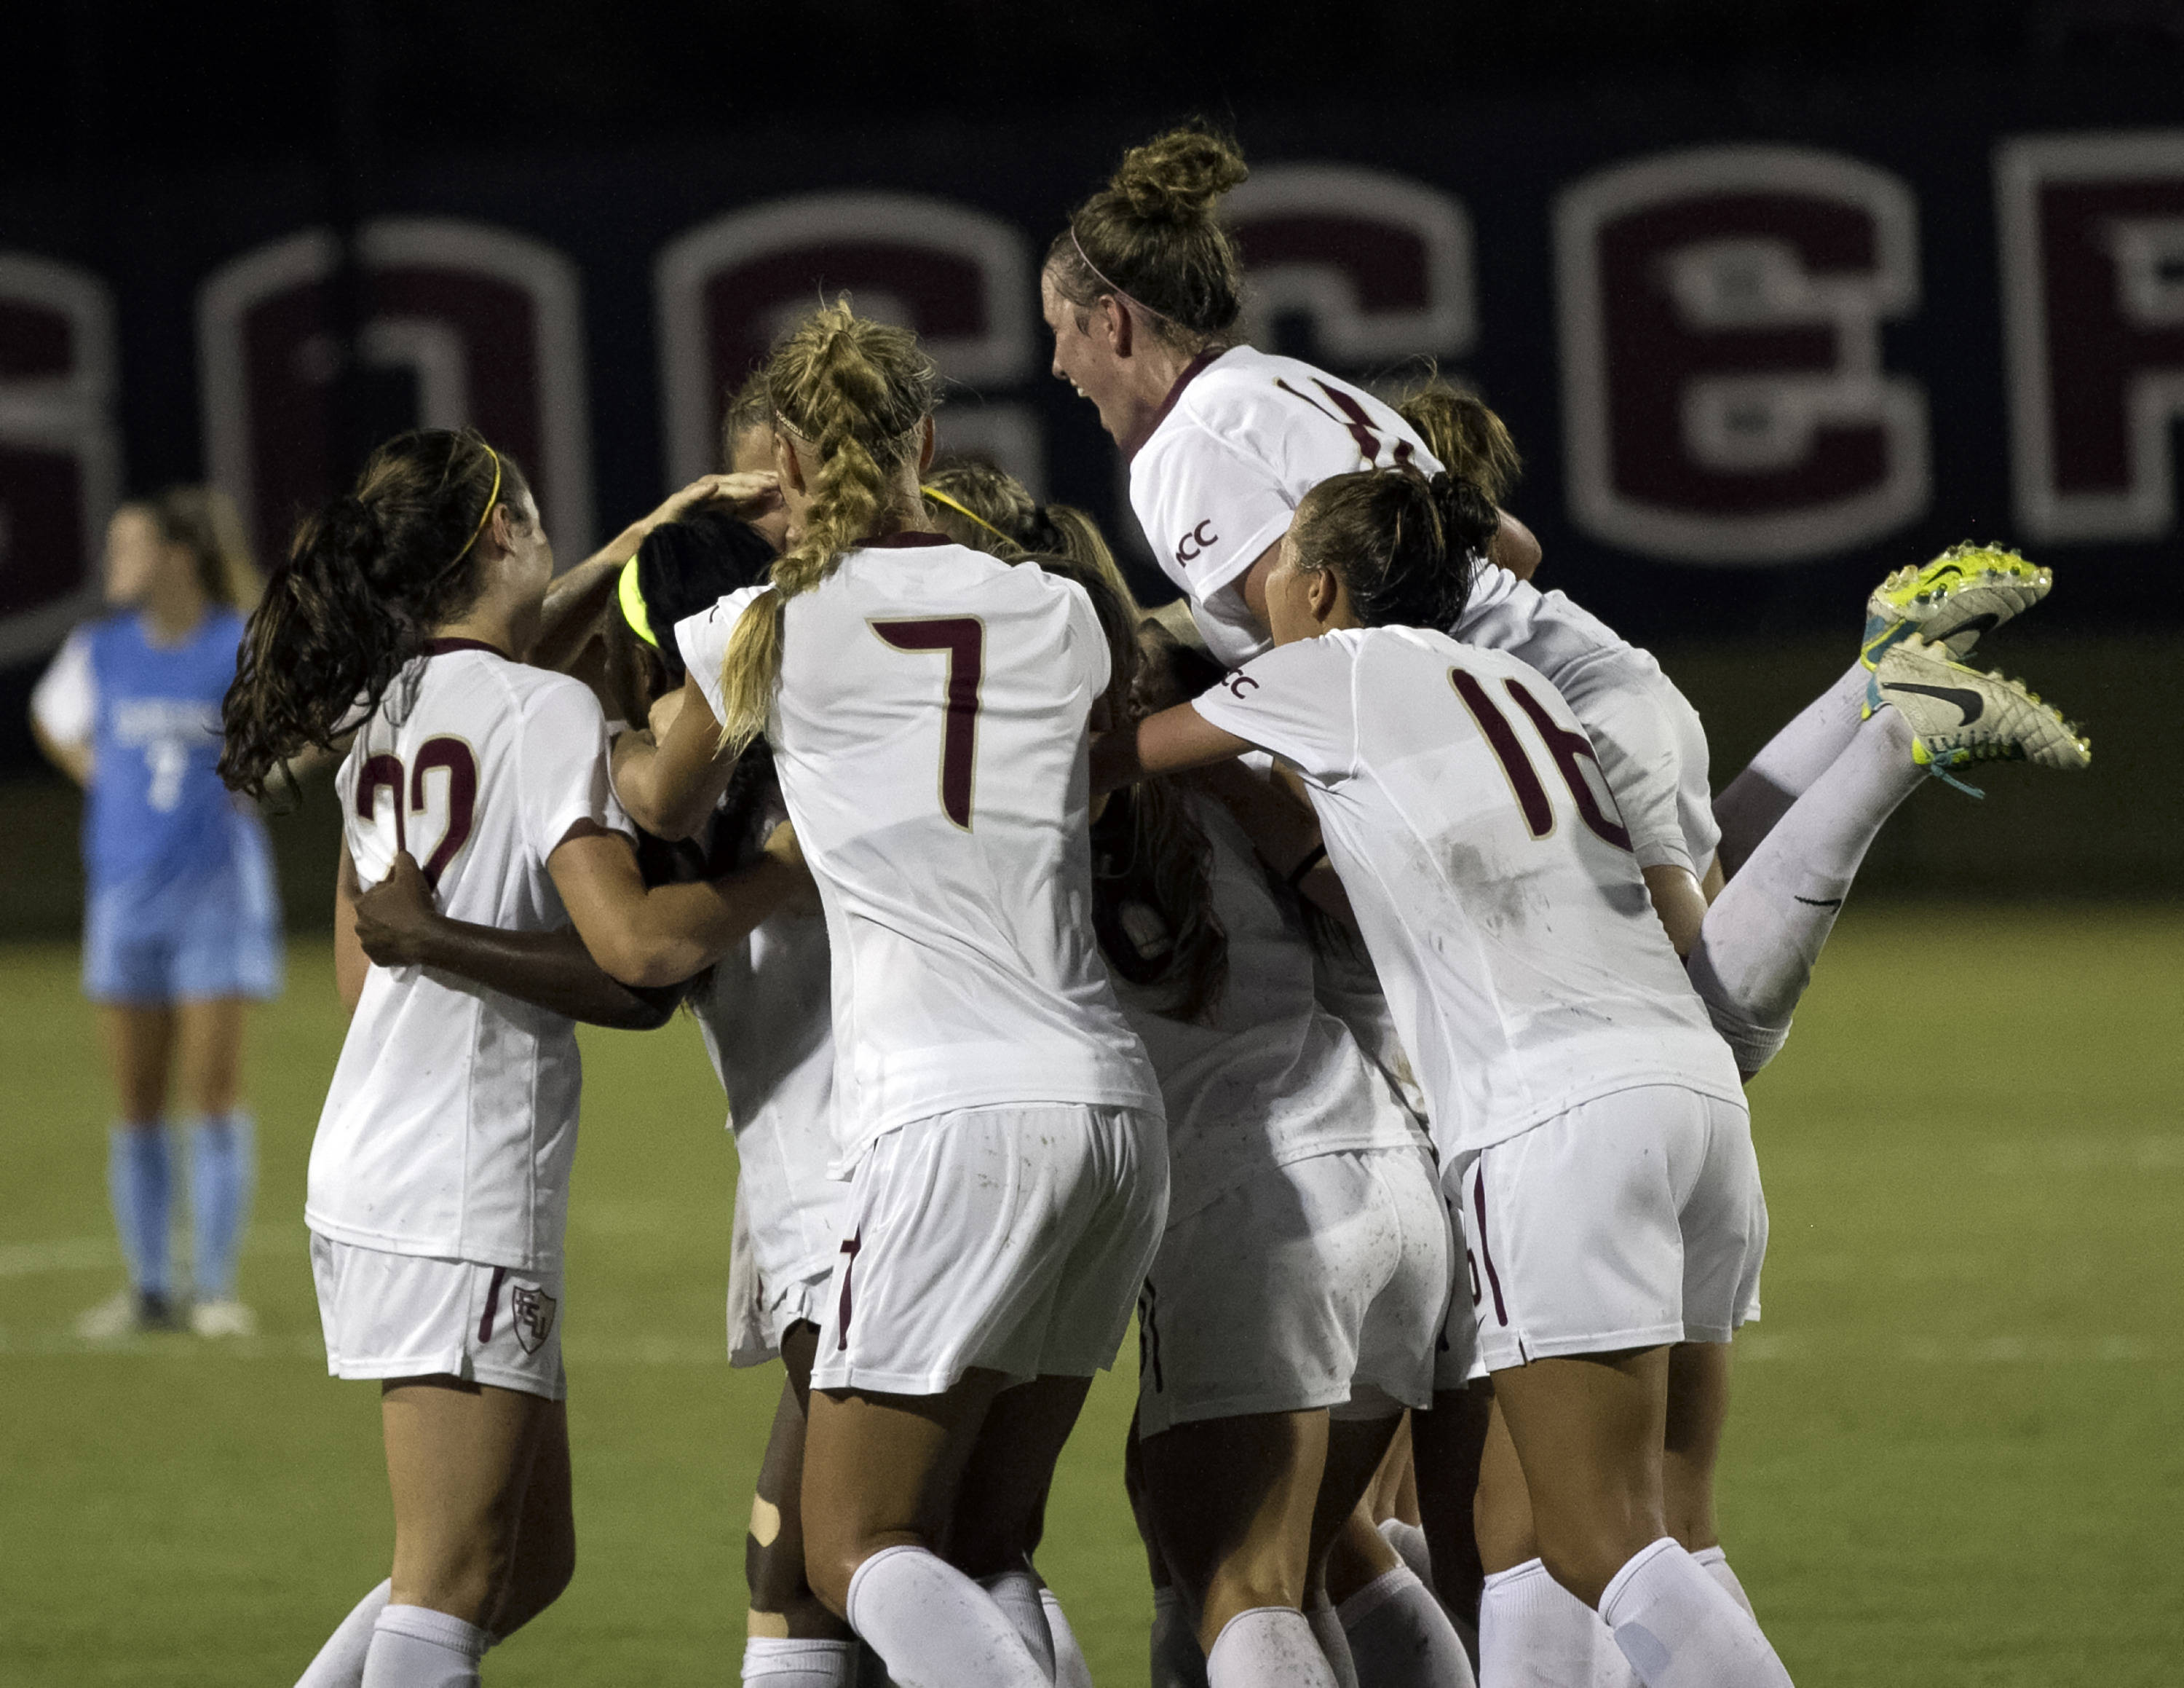 Jamia Fields game winning goal celebration, FSU vs North Carolina,  9-18-13, (Photo by Steve Musco)